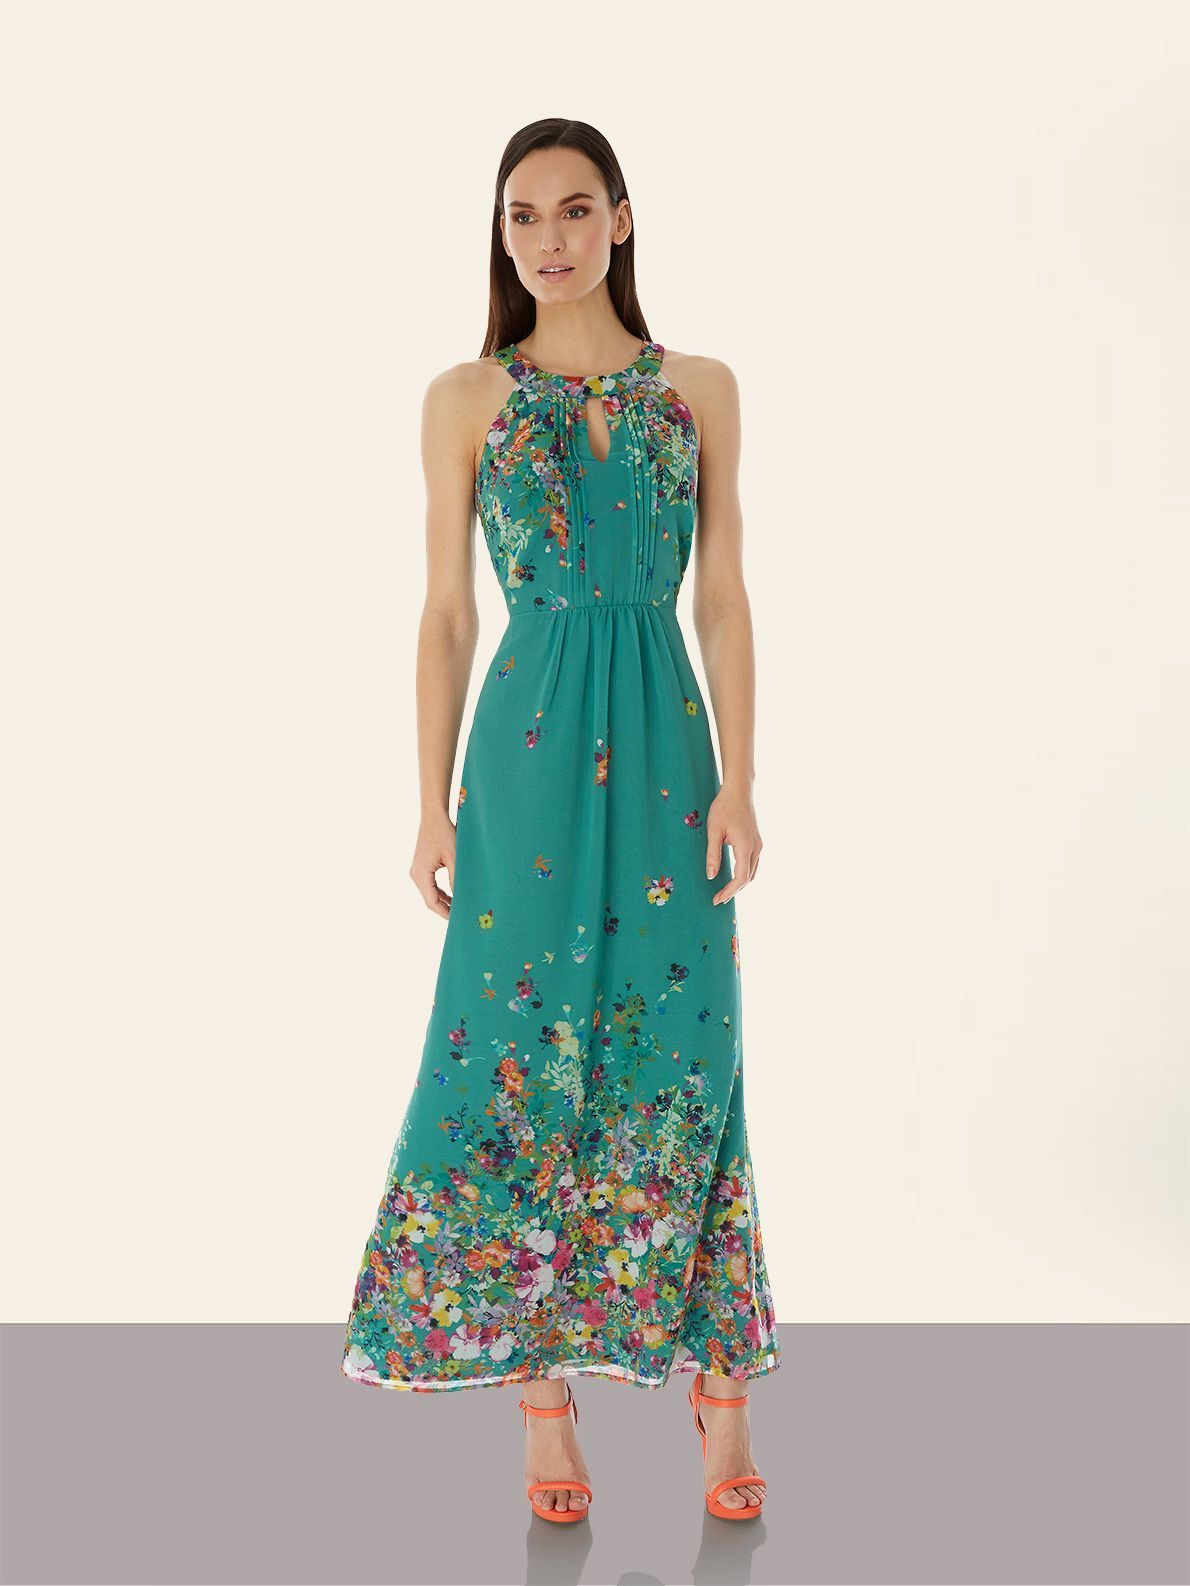 Cascading Floral Print Halterneck Maxi Dress falls full-length pleated  detailing at front, a concealed hook and eye fastening at the neck with a  keyhole ...